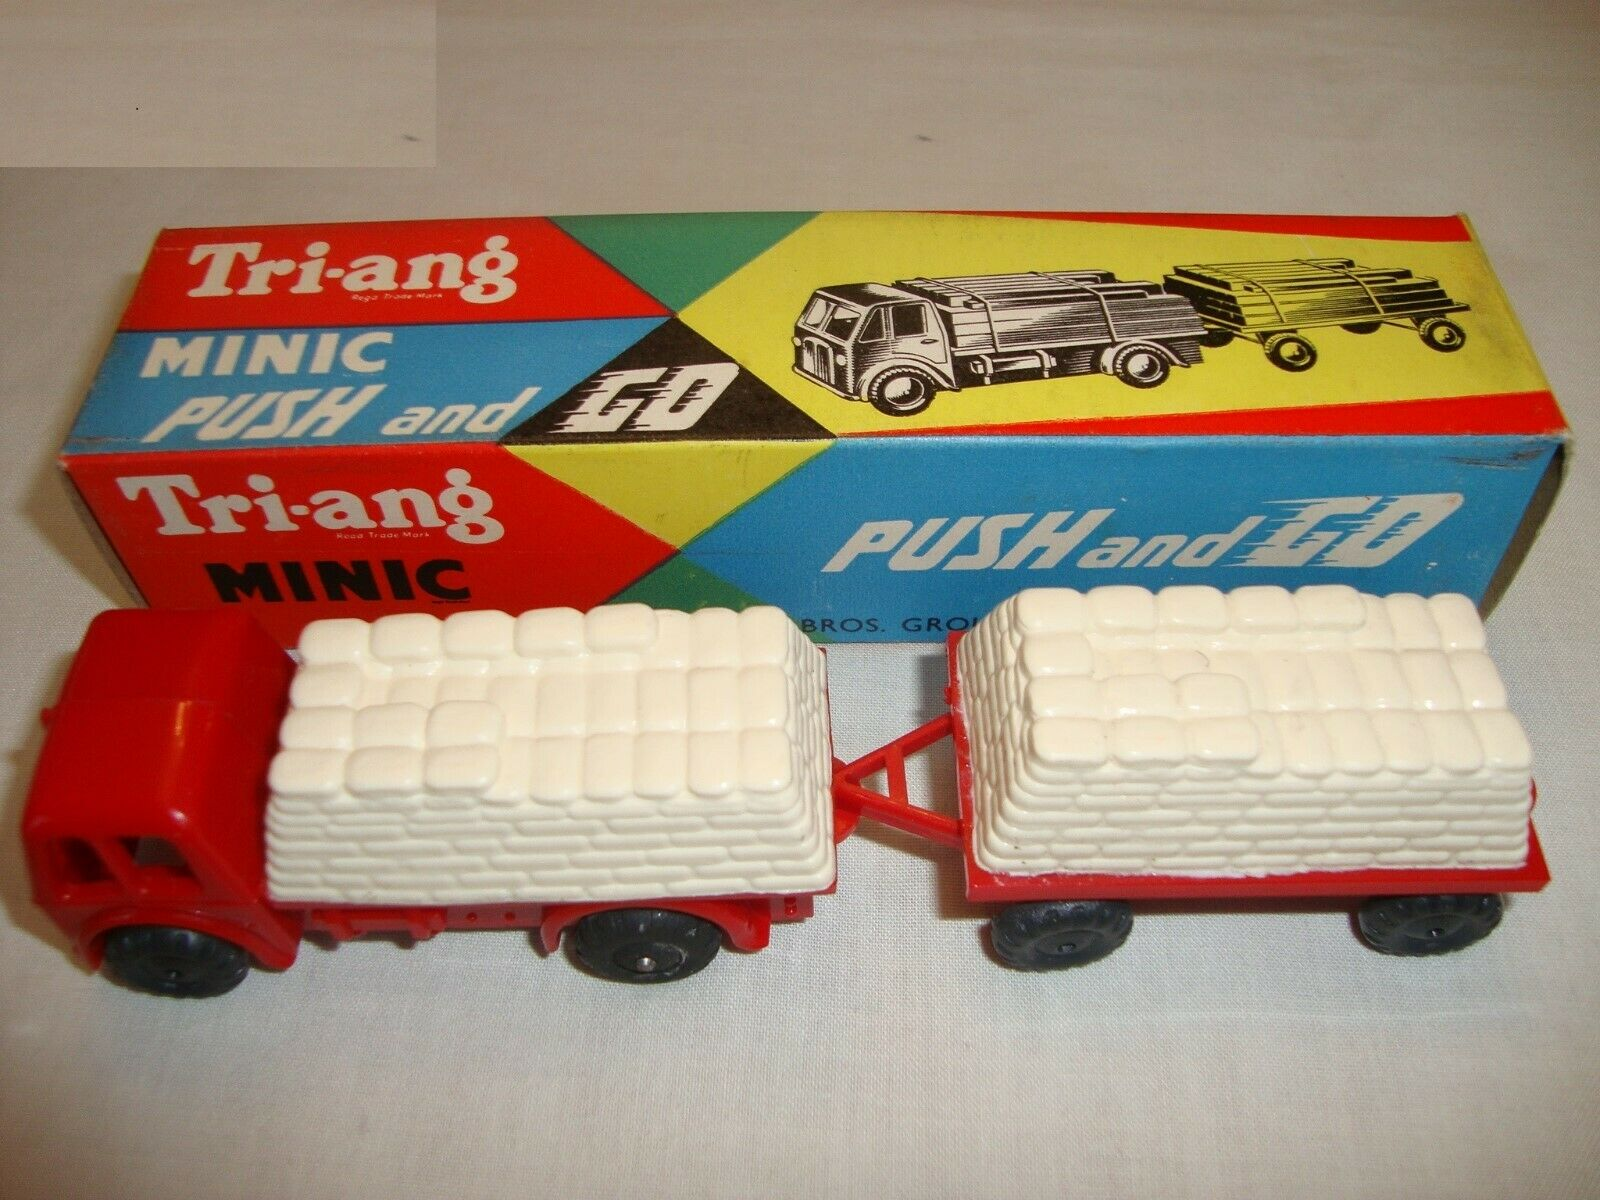 Triang minic push & go ciment camion & remorque-vn mint in original box-rare